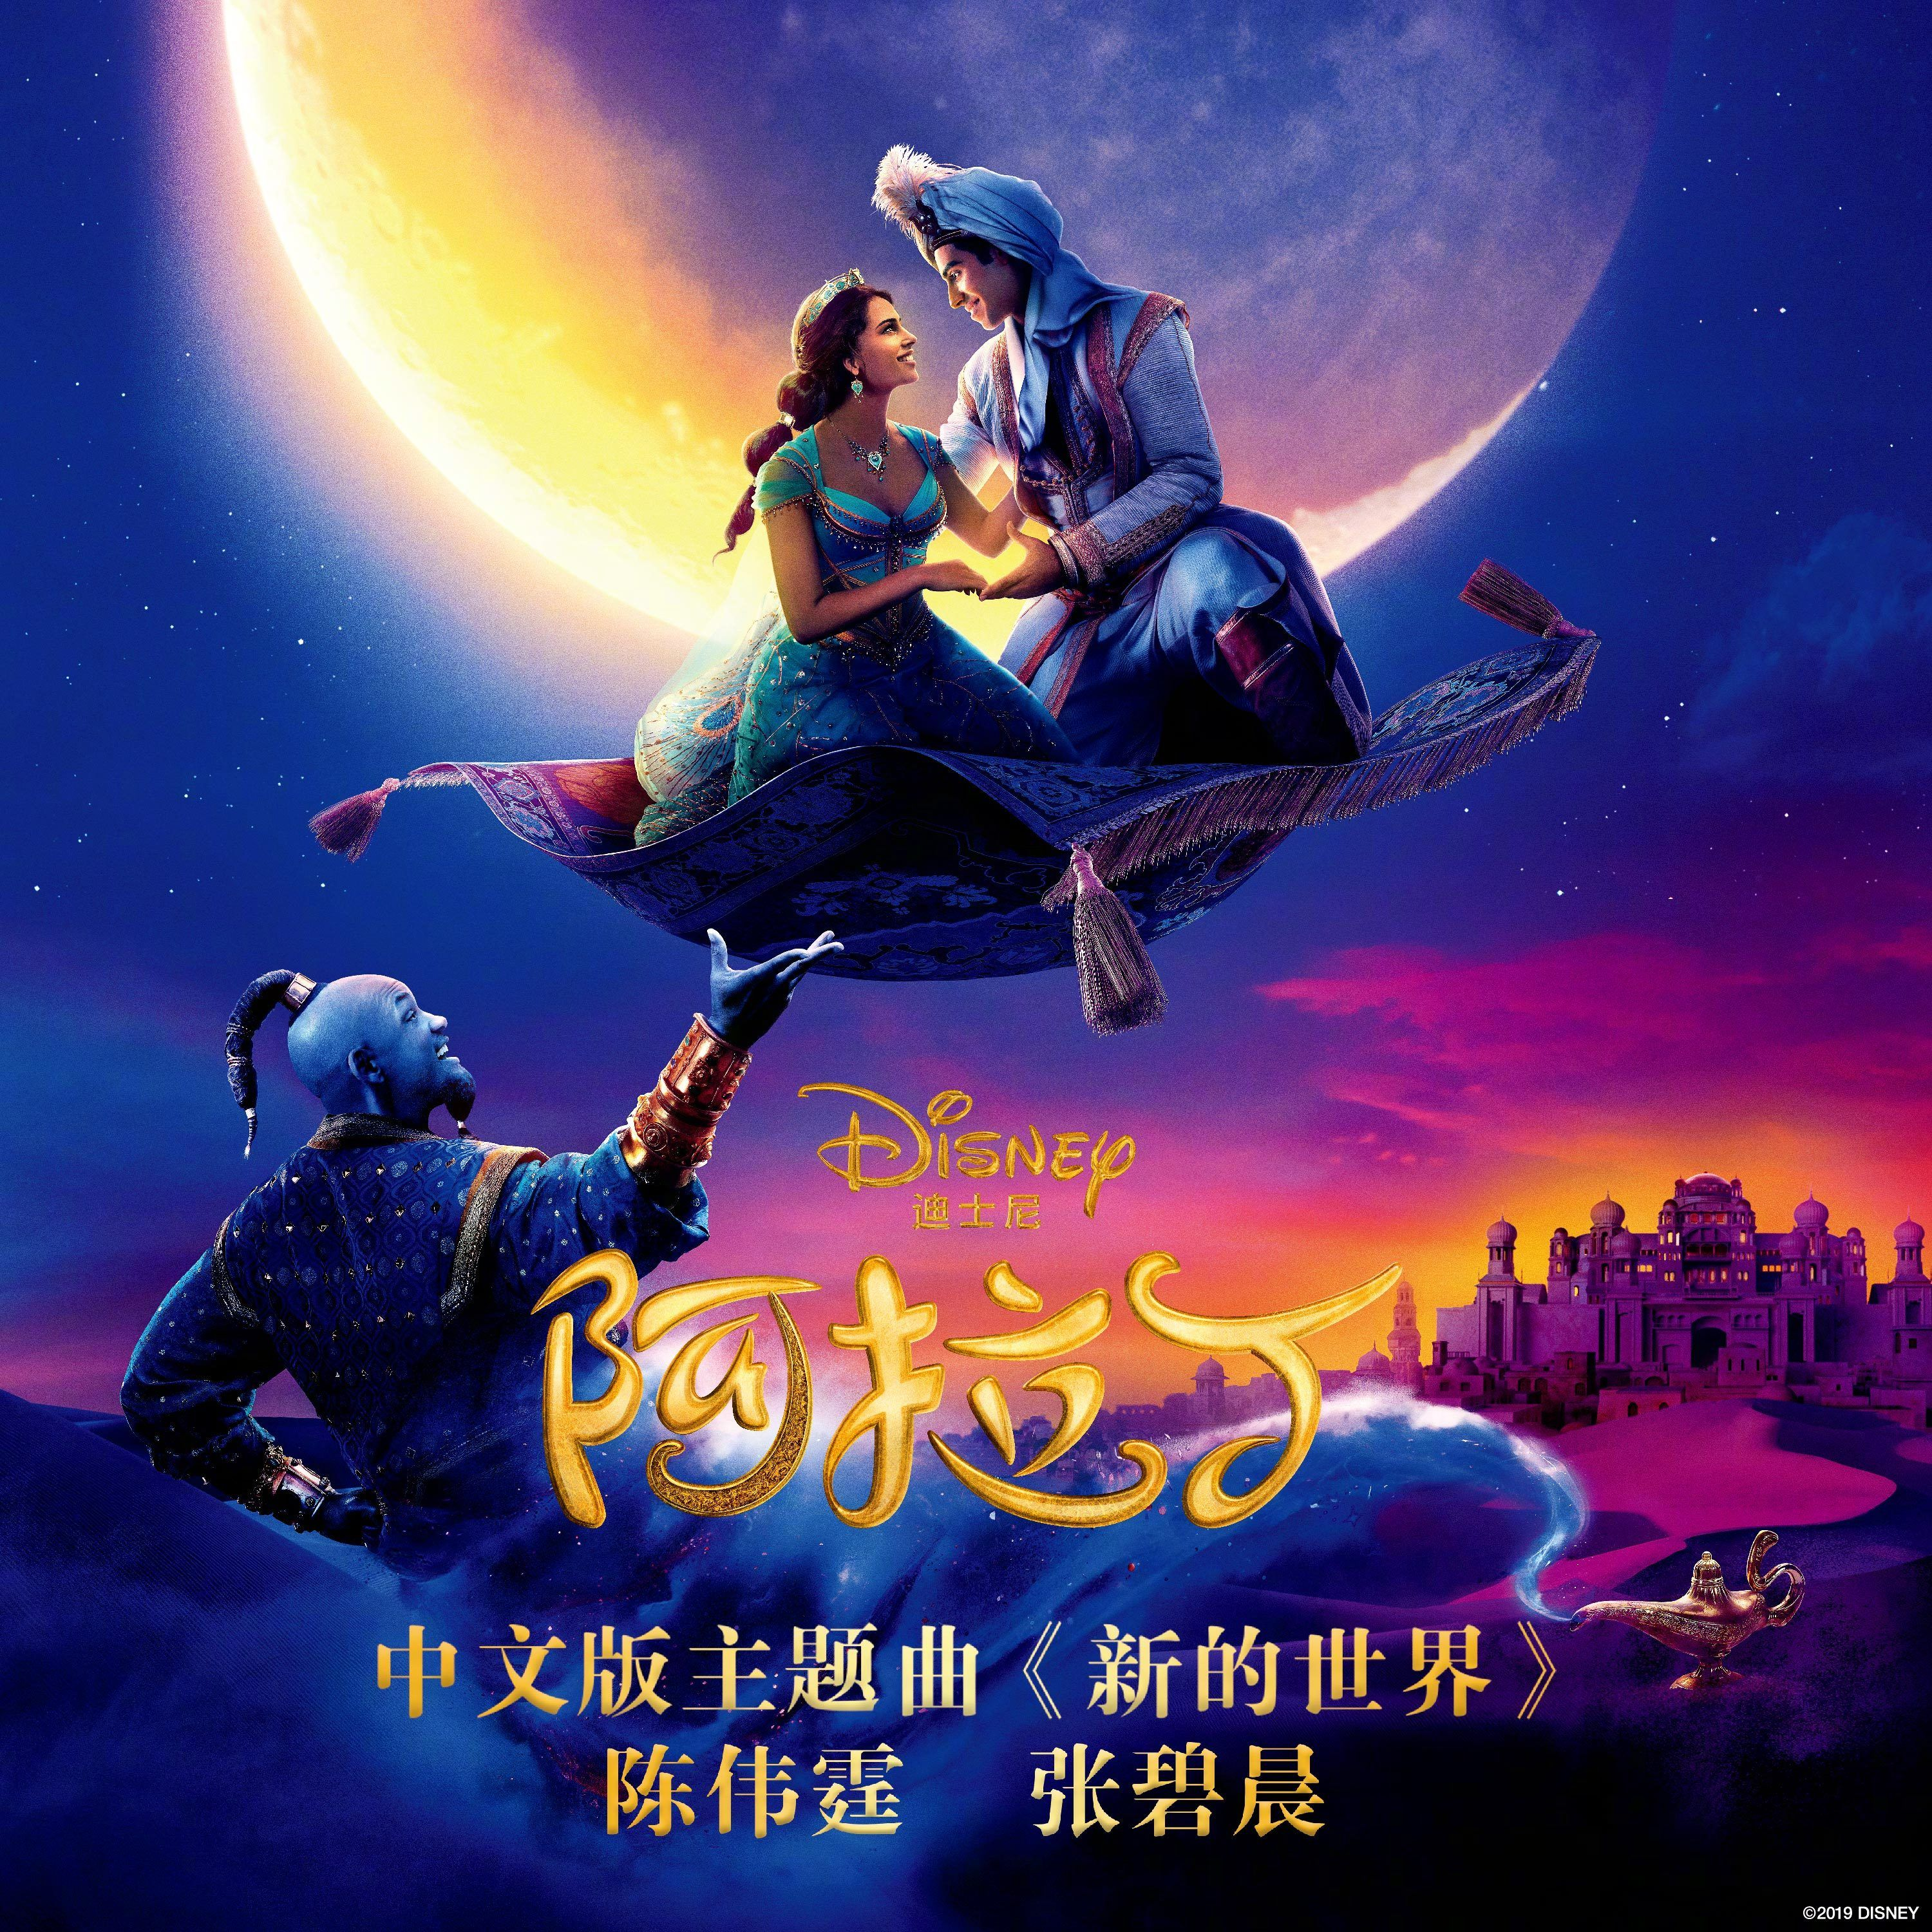 William Chan 新的世界 A Whole New World Chinese Version